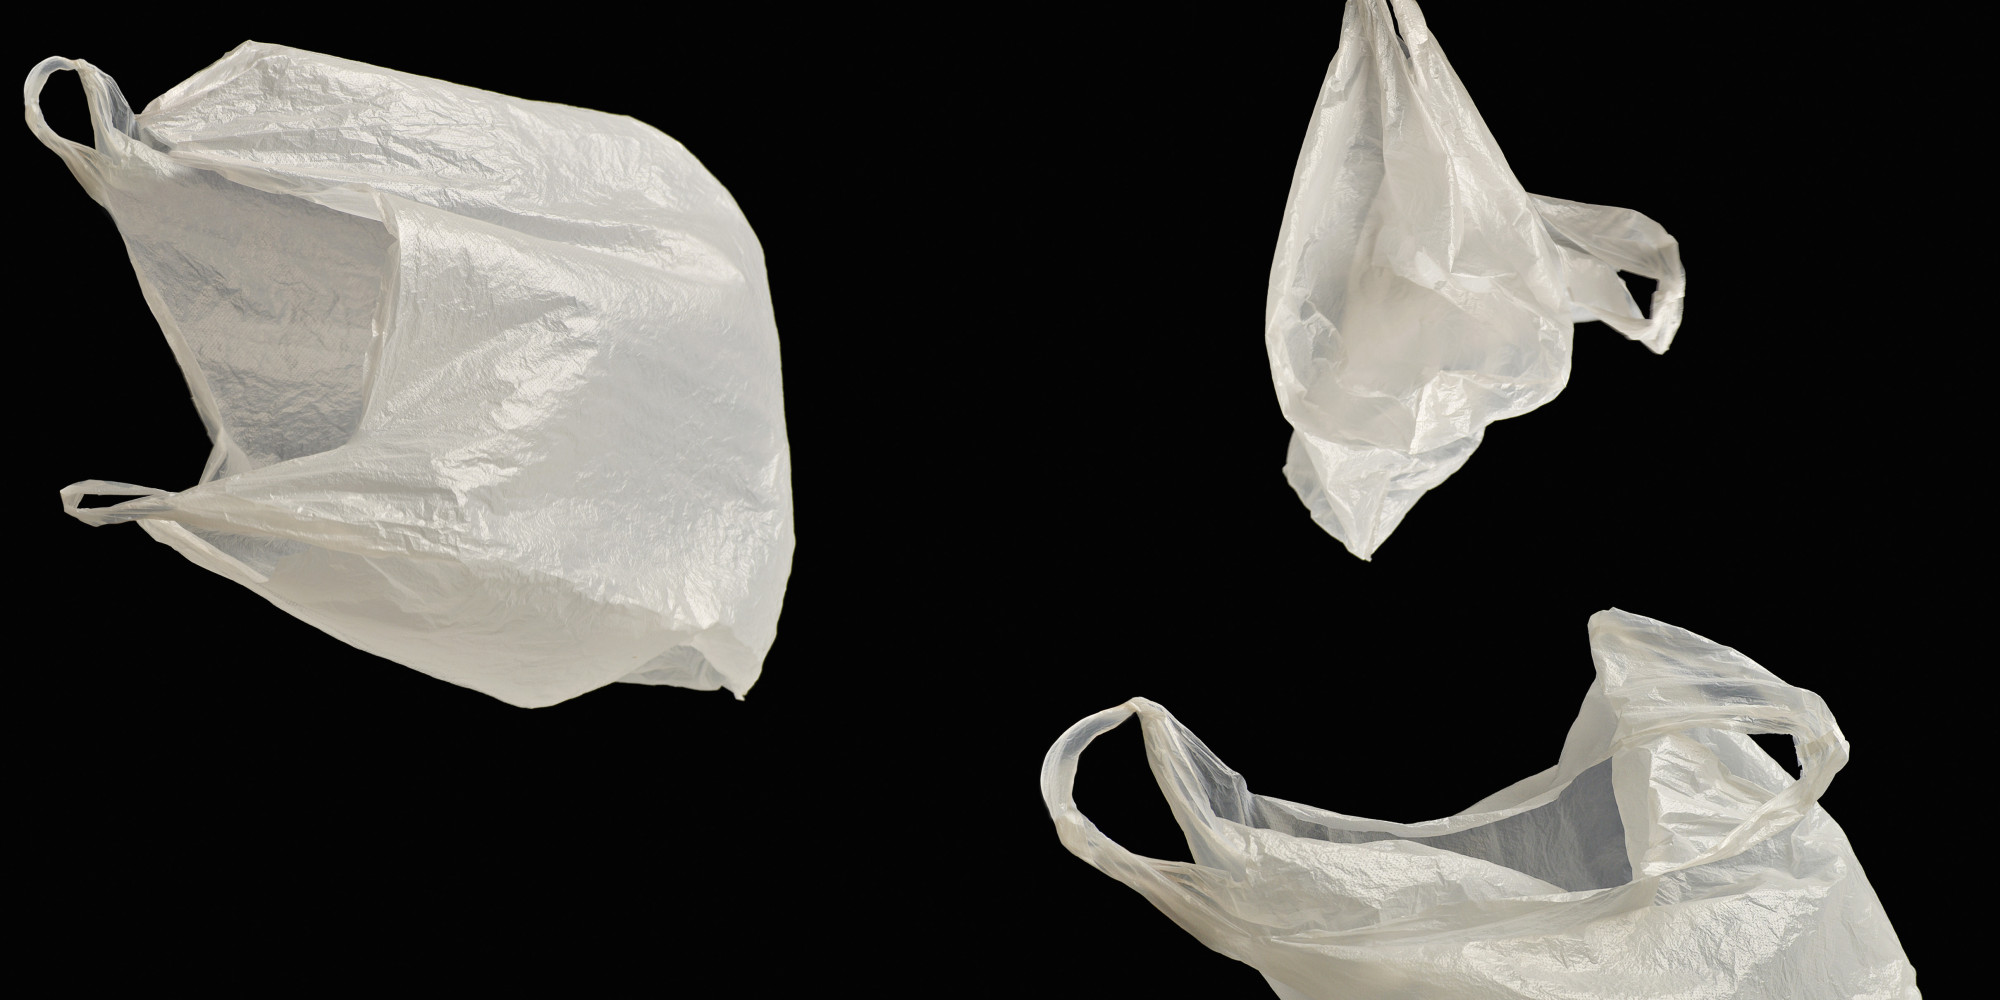 plastic bag 4 days ago  if it passes, anchorage would join nearly 20 alaska communities that no longer  allow plastic shopping bags, including palmer, wasilla and a.